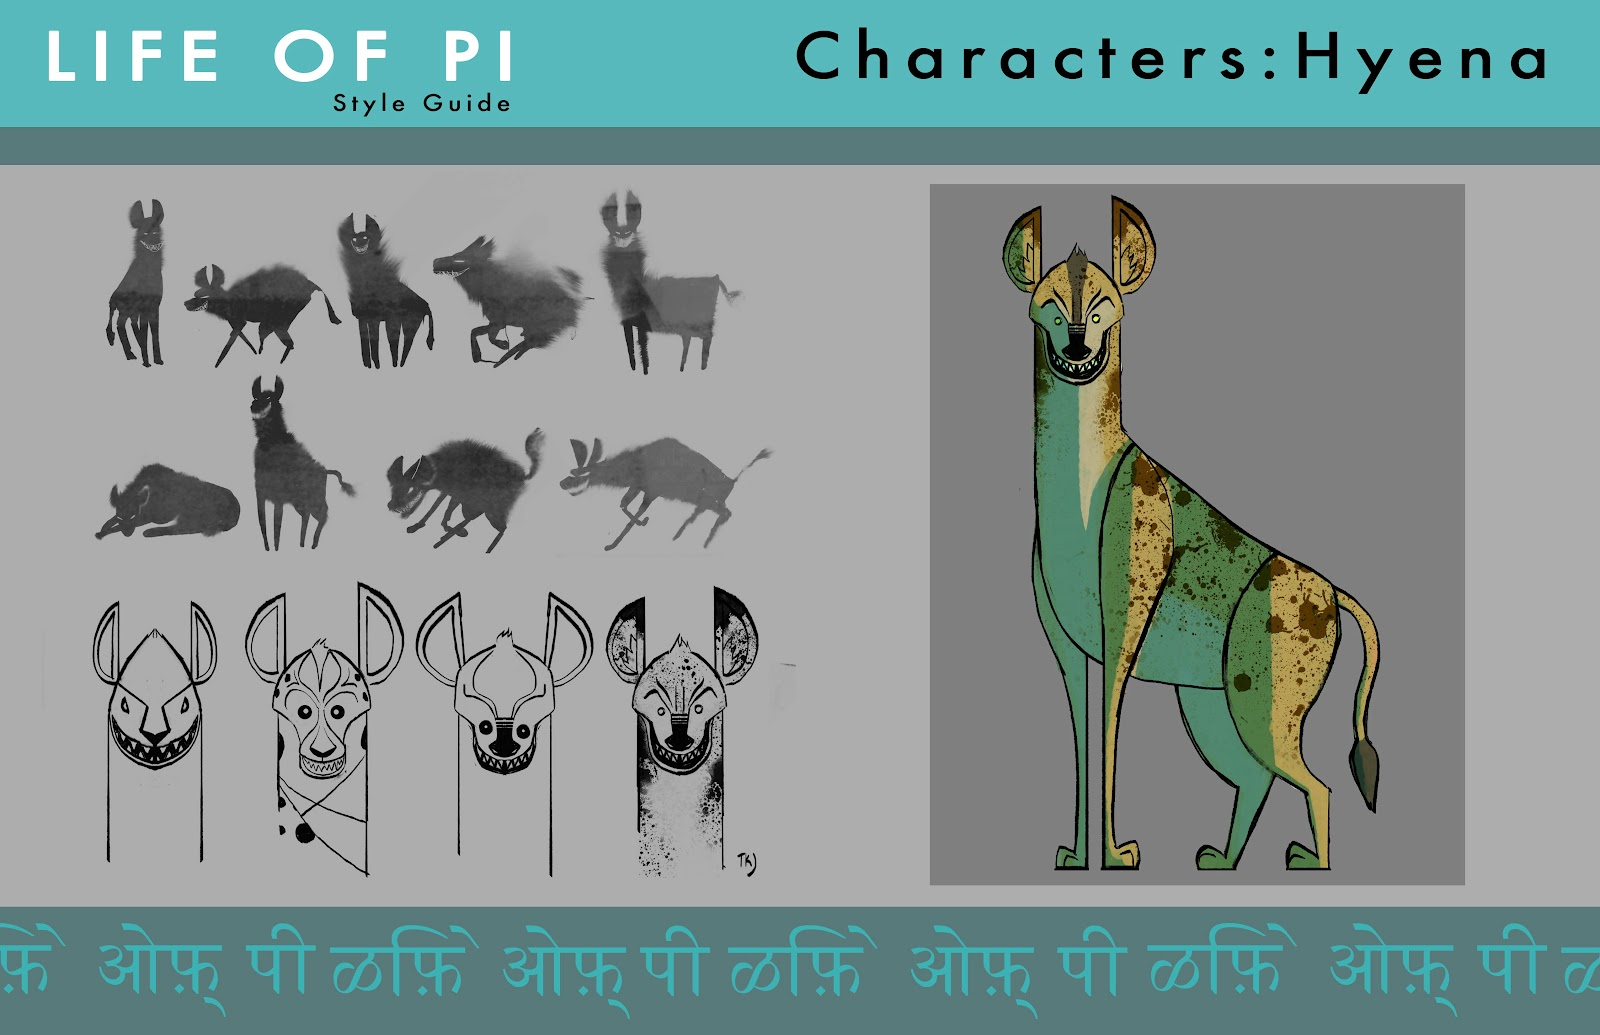 An animators journey life drawing black models picture for Life of pi character development